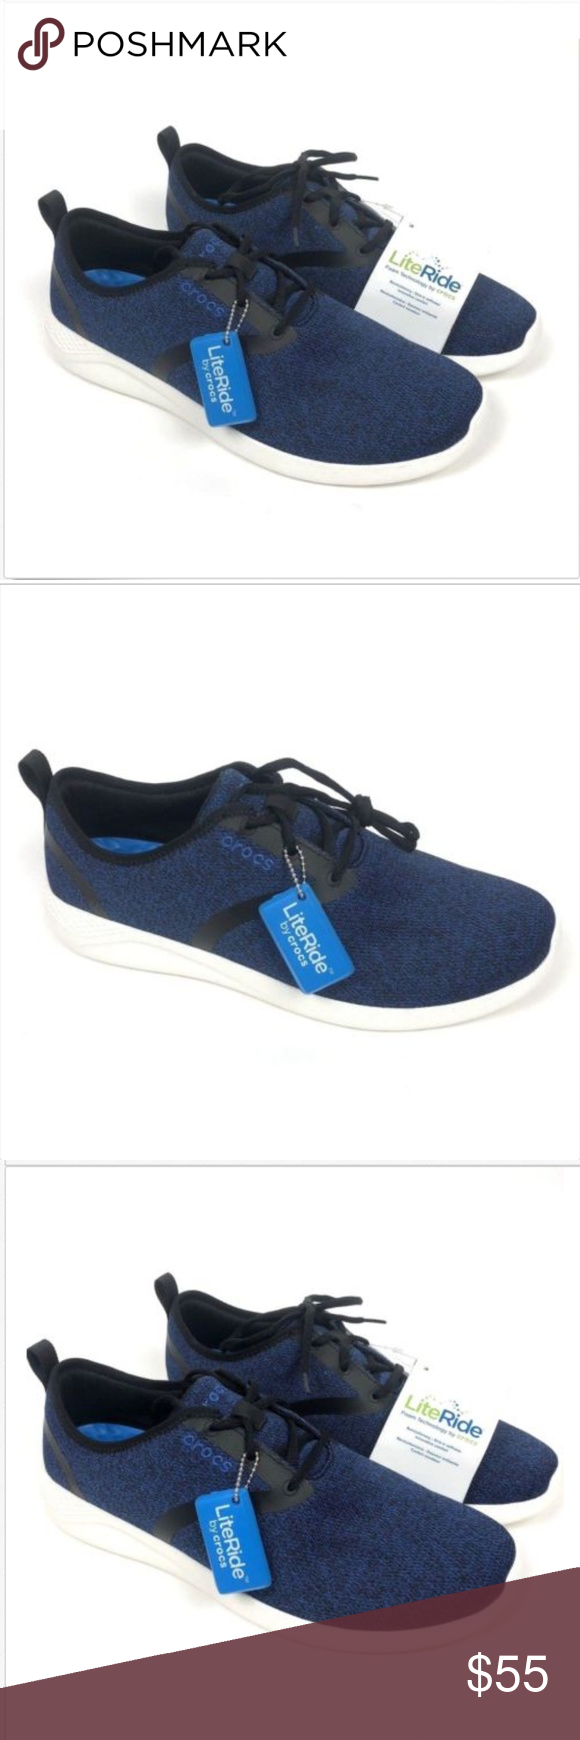 NEW Crocs LiteRide Lace Up Sneakers